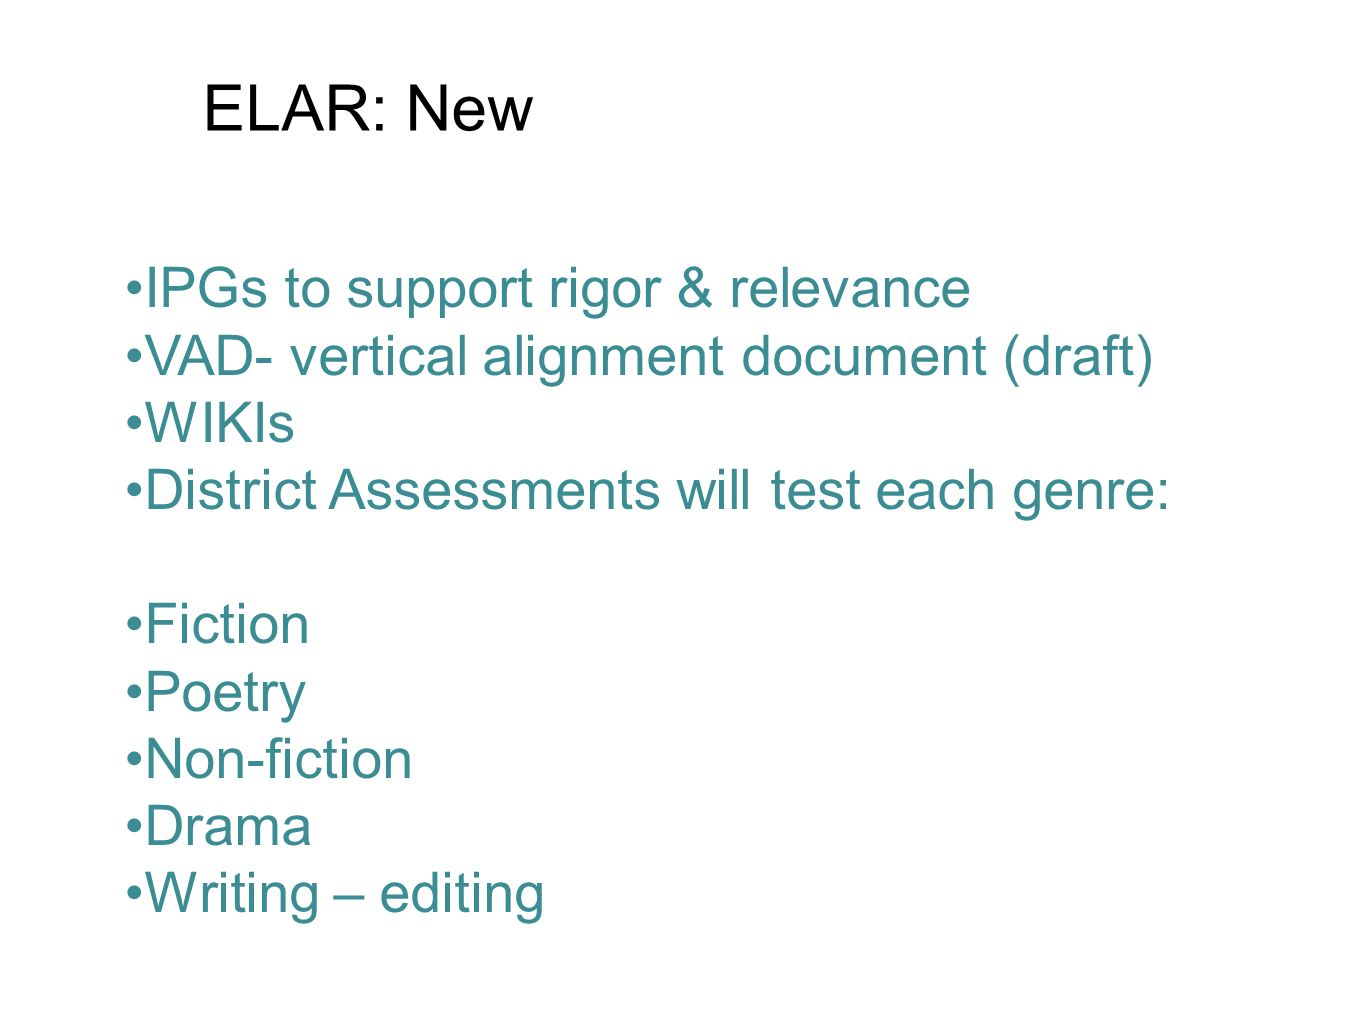 ELAR: New IPGs to support rigor & relevance VAD- vertical alignment document (draft) WIKIs District Assessments will test each genre: Fiction Poetry Non-fiction Drama Writing – editing